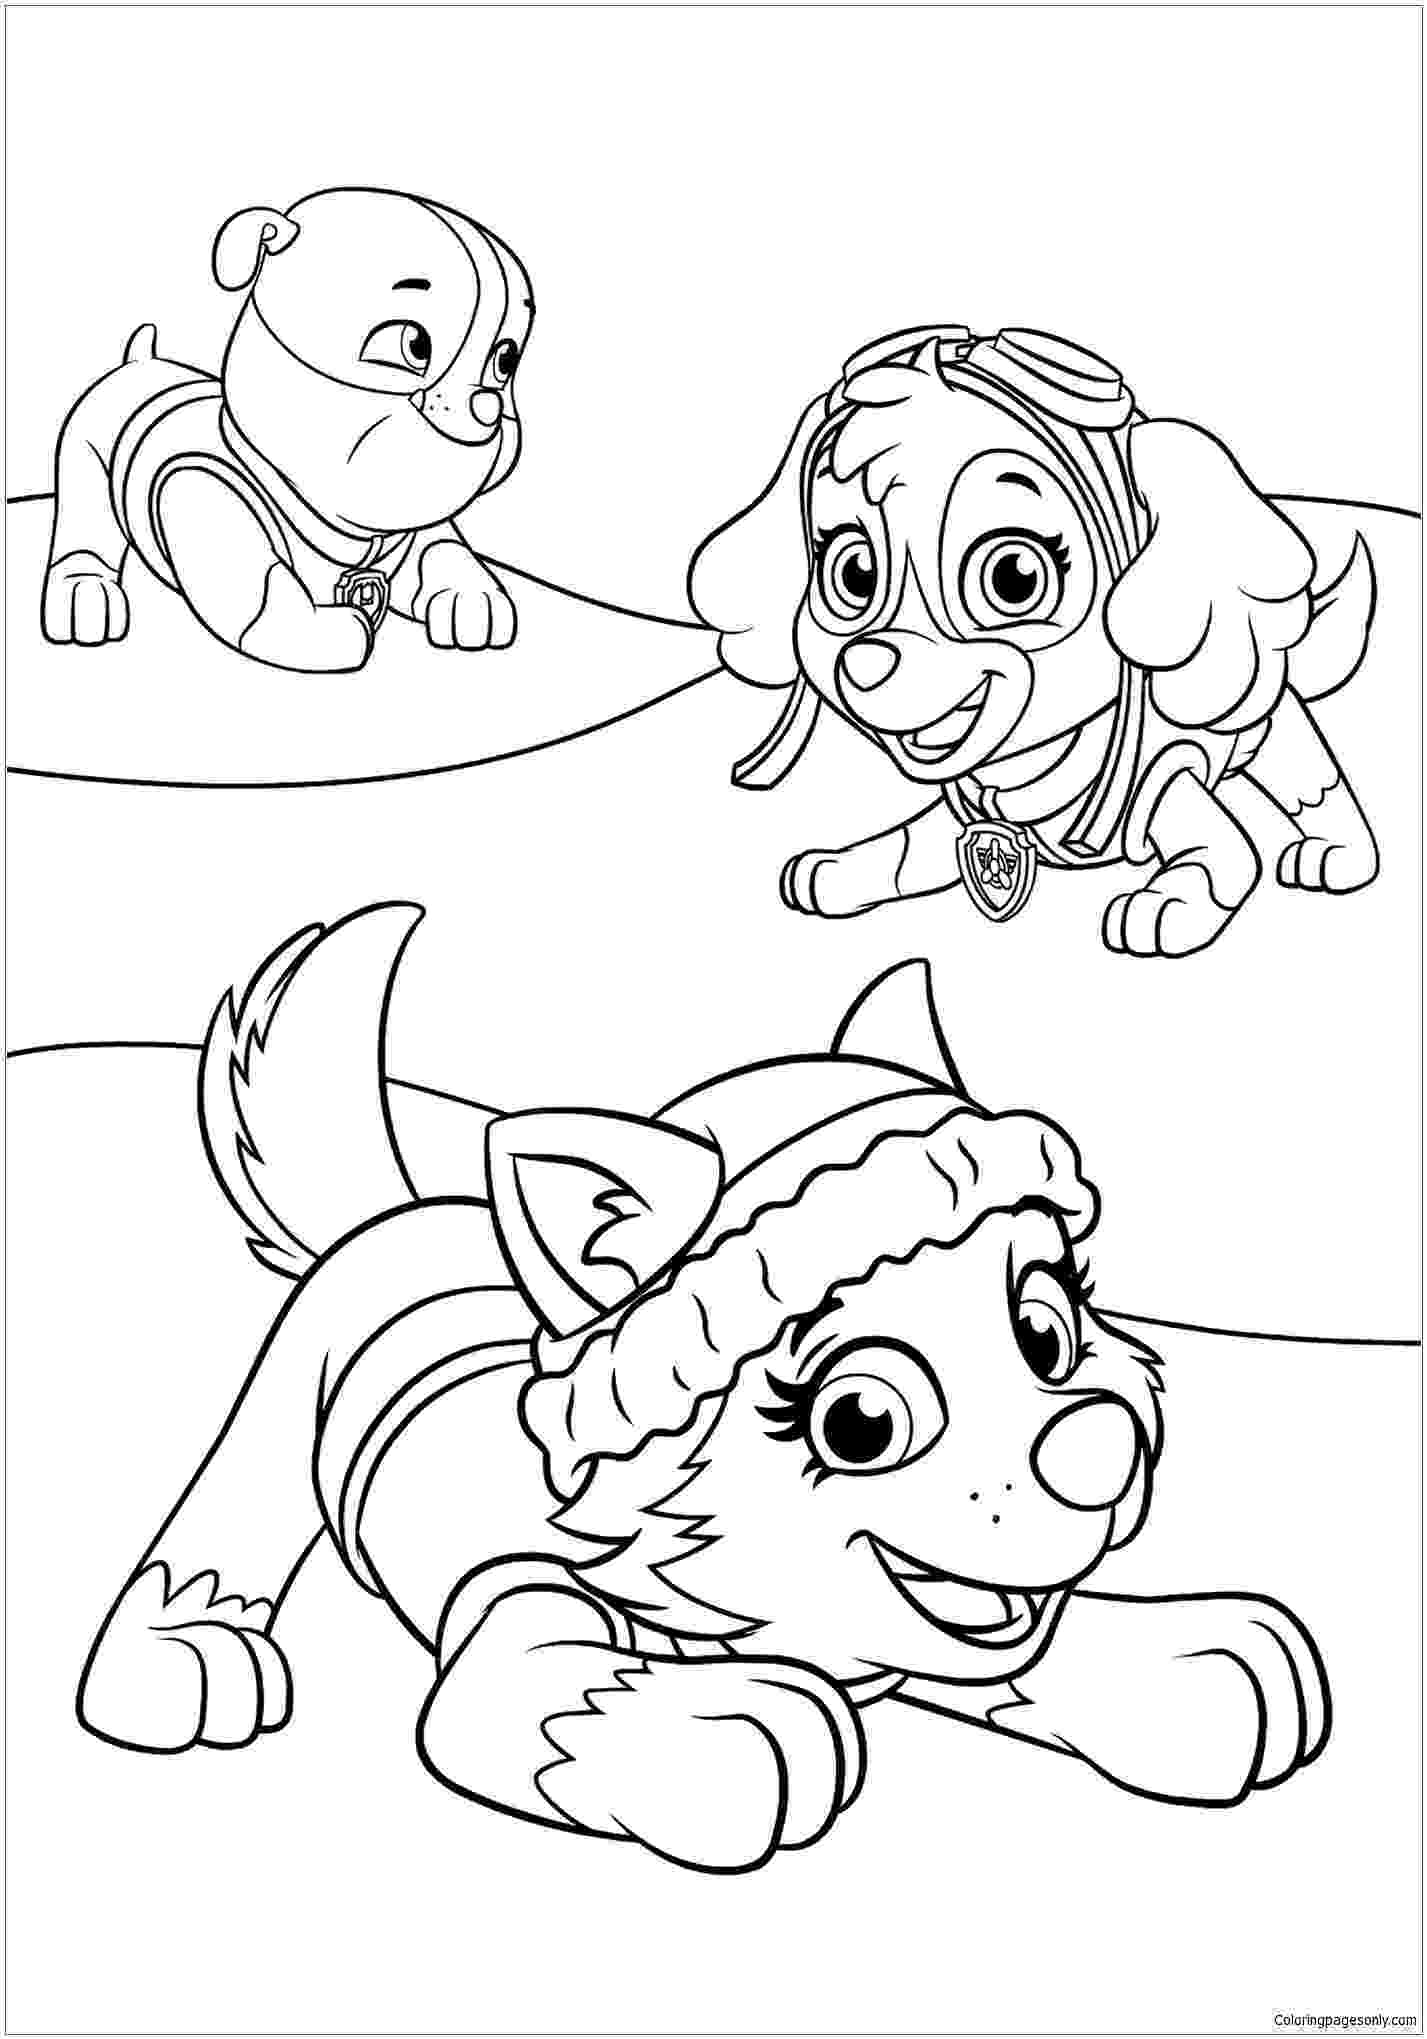 paw patrol coloring pages paw patrol coloring pages printable free coloring sheets patrol coloring pages paw